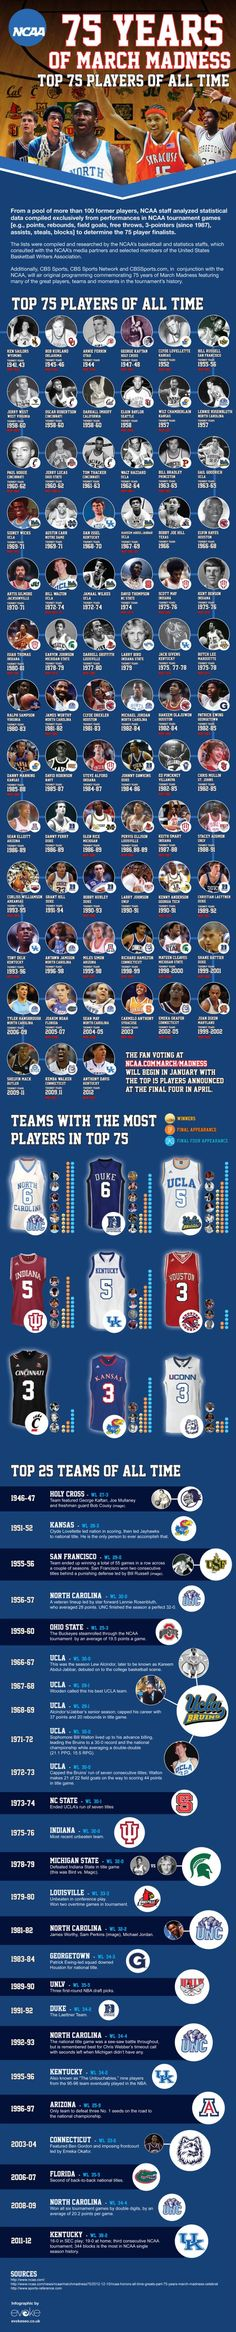 75 Years of March Madness: Top 75 PLayers of All Time[INFOGRAPHIC]